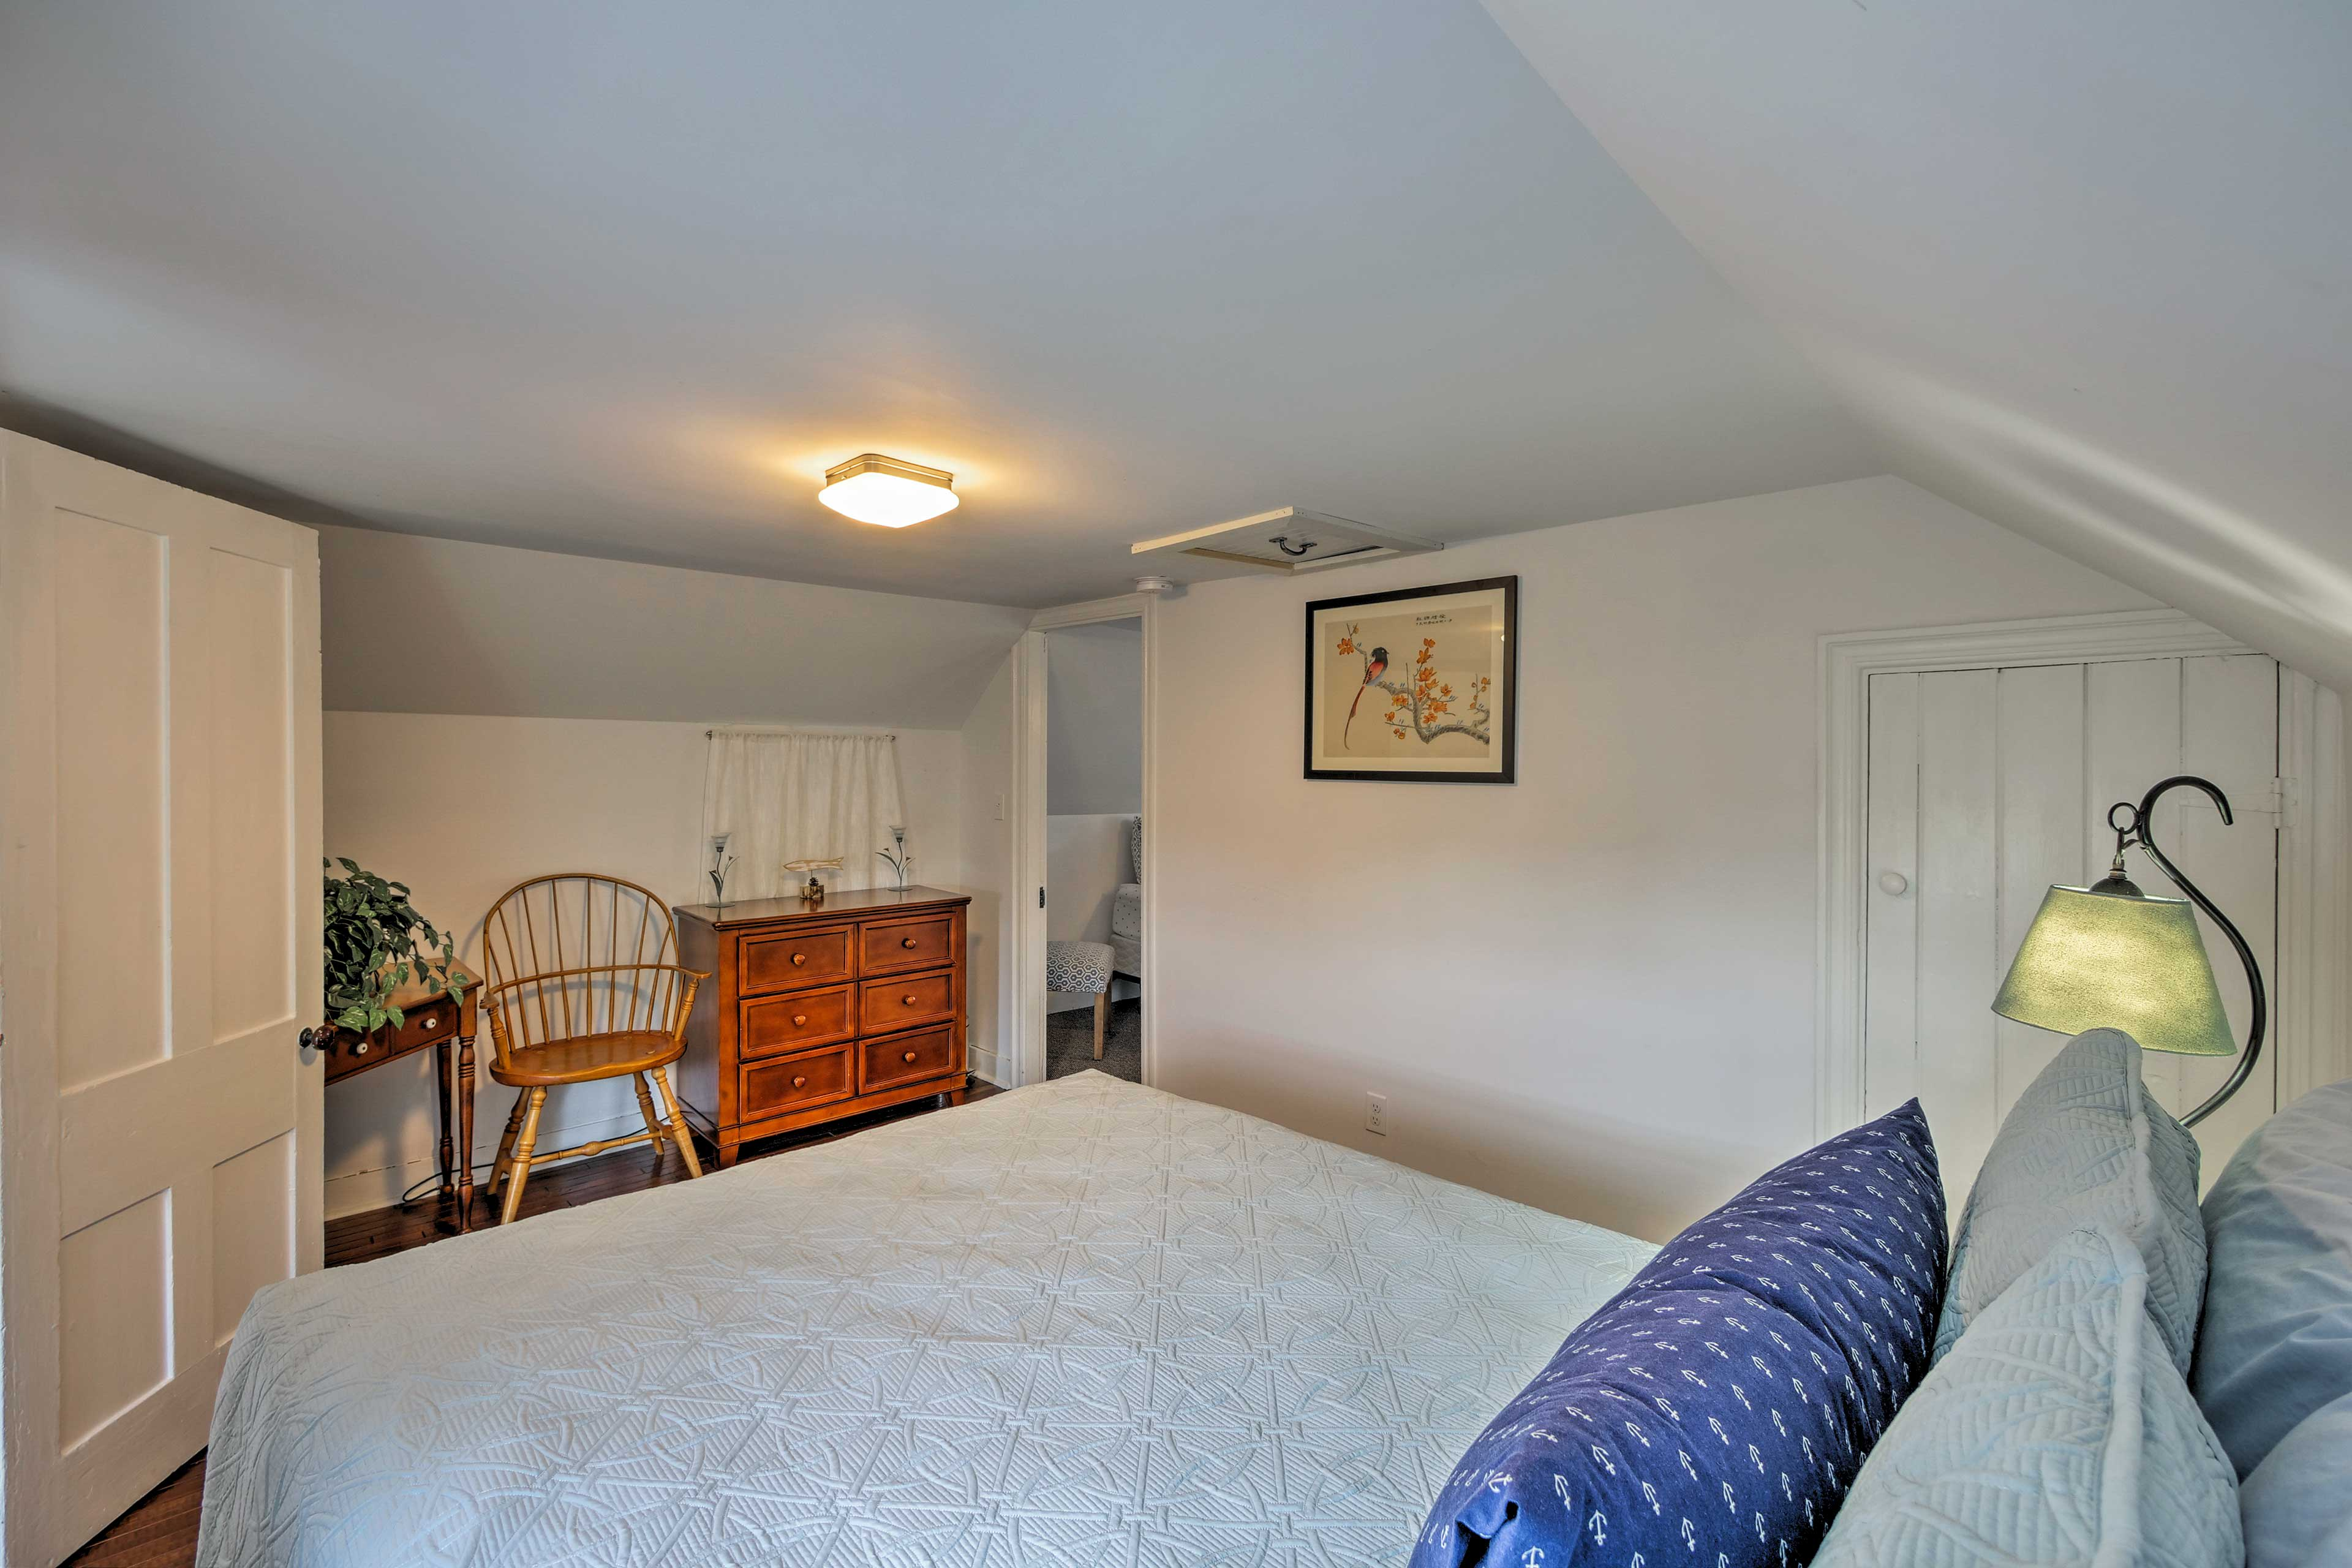 Two additional guests can sleep on the pullout bed in the living room.